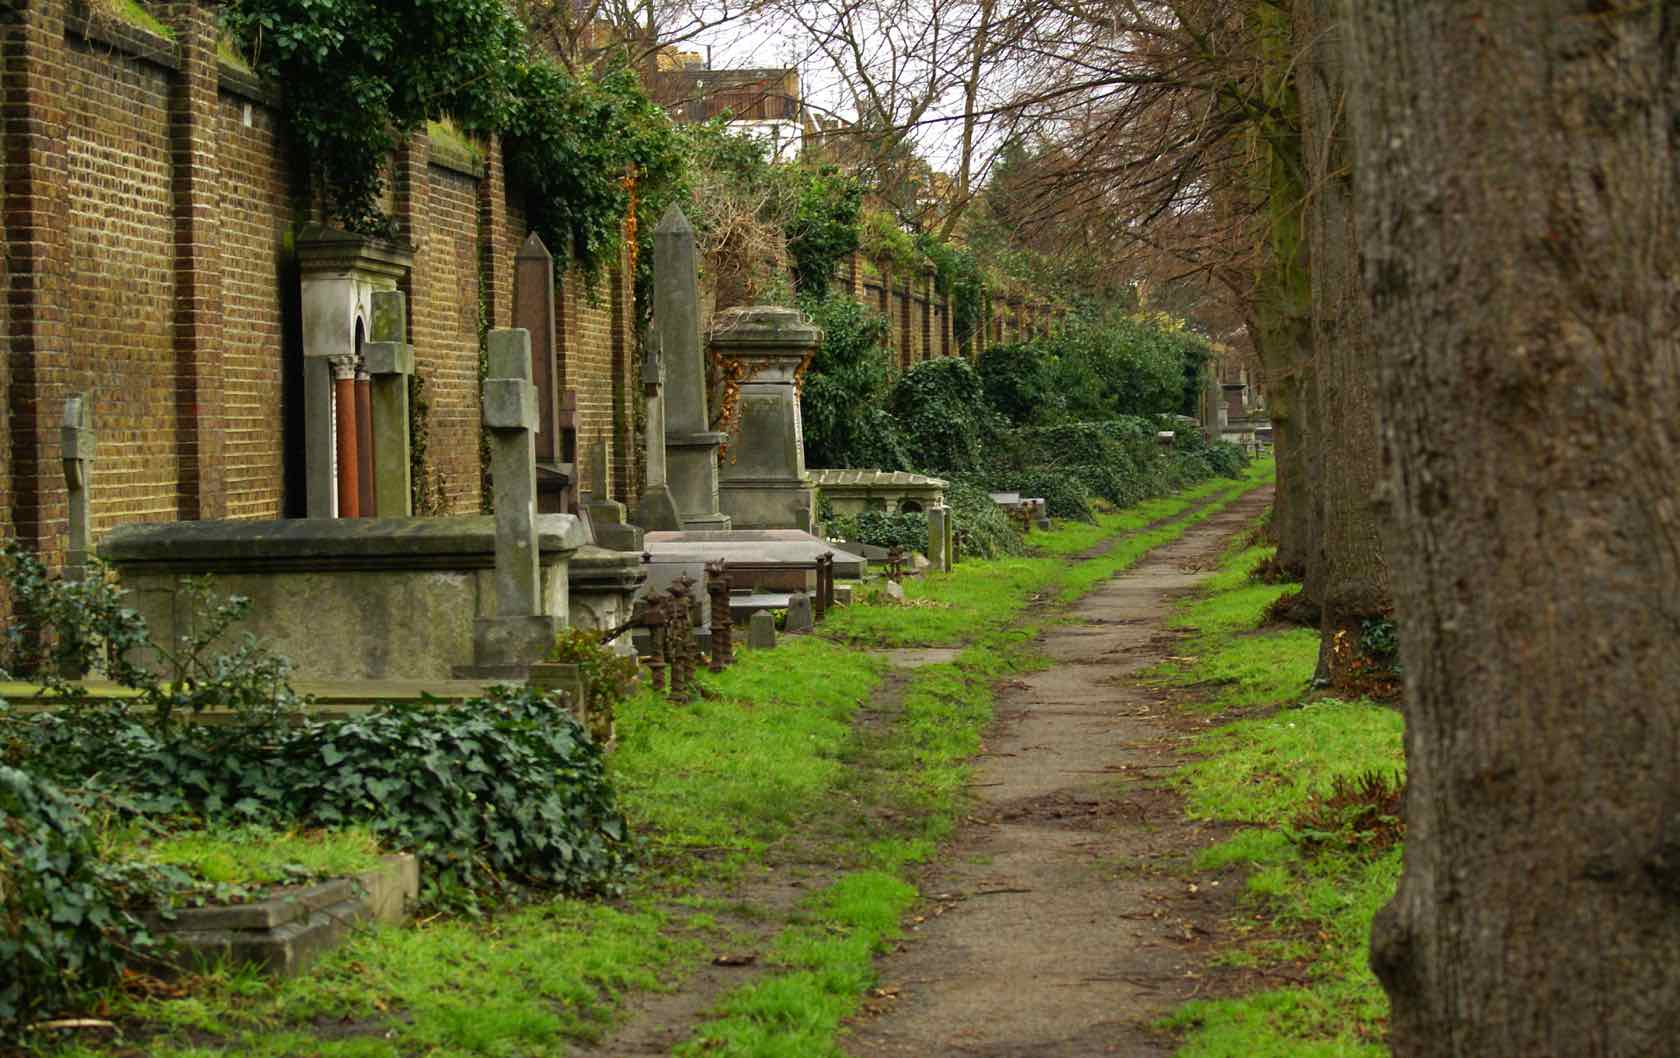 Exploring West Chelsea in London: Fulham Road, Old Brompton Road & The Beach